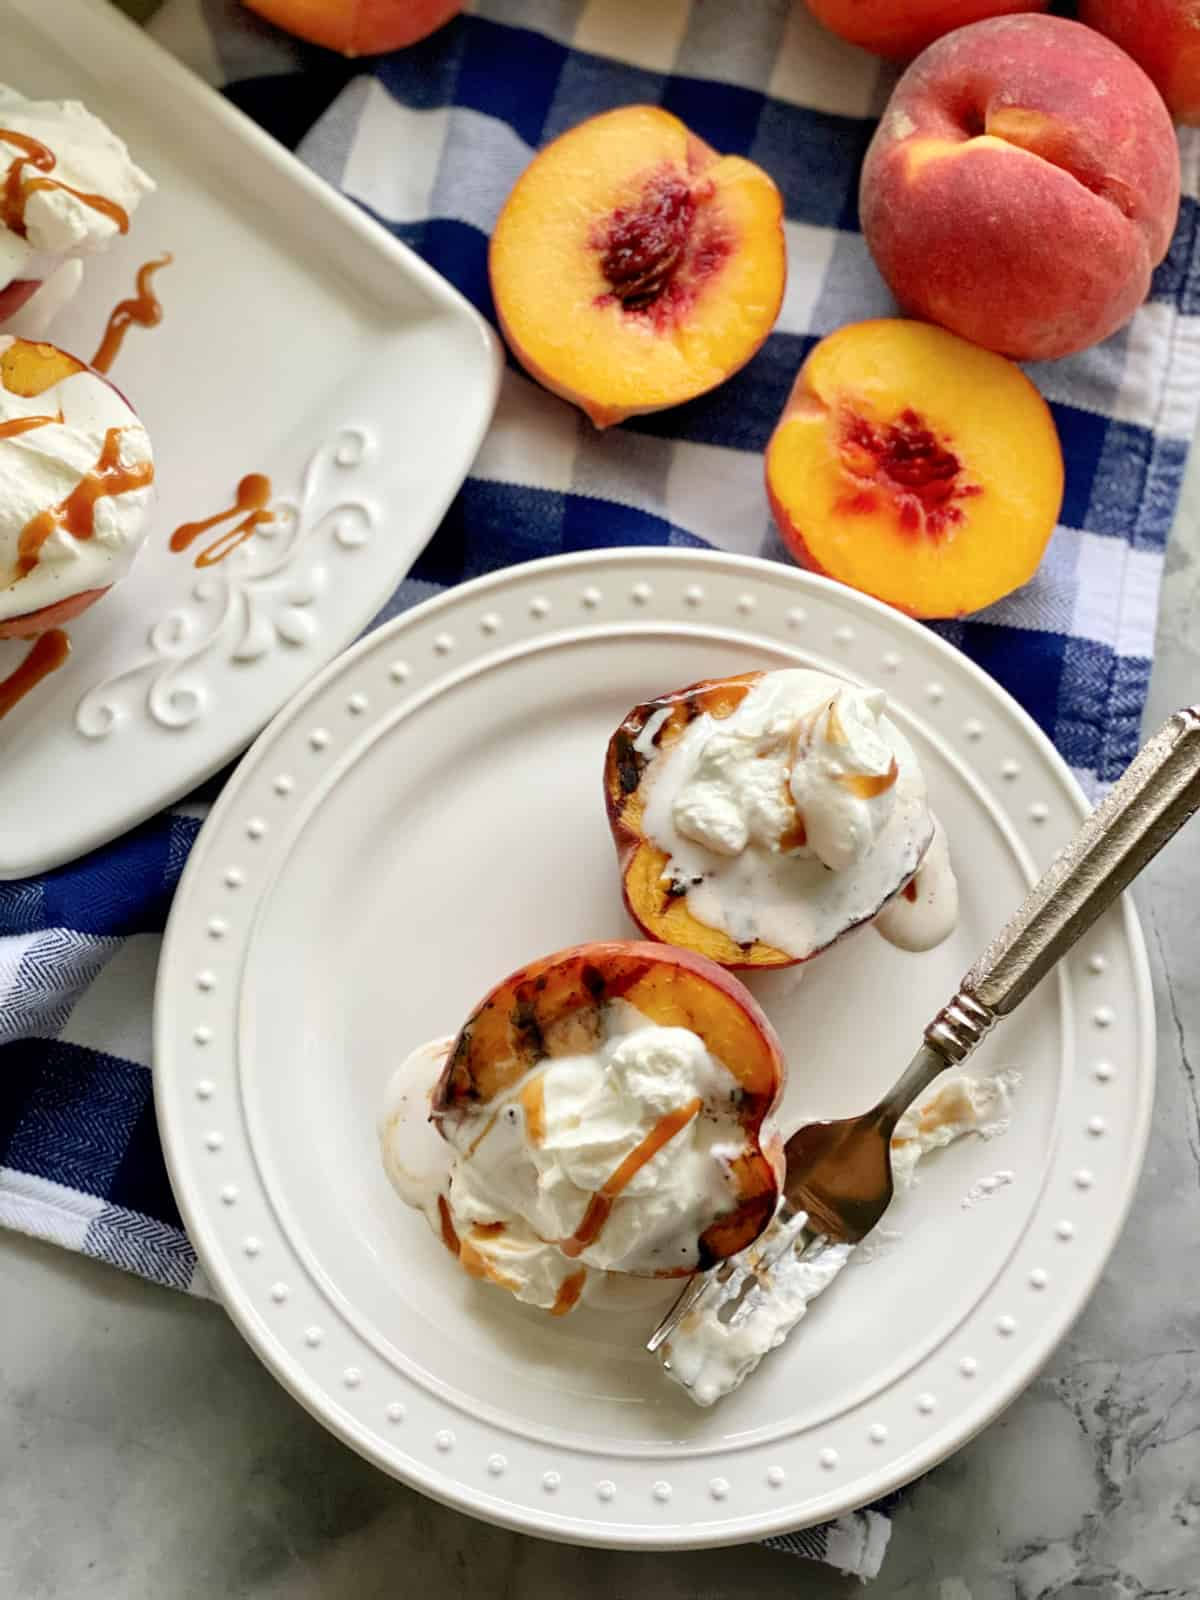 Top view of two grilled peaches on a white plate topped with whipped cream and caramel sauce.